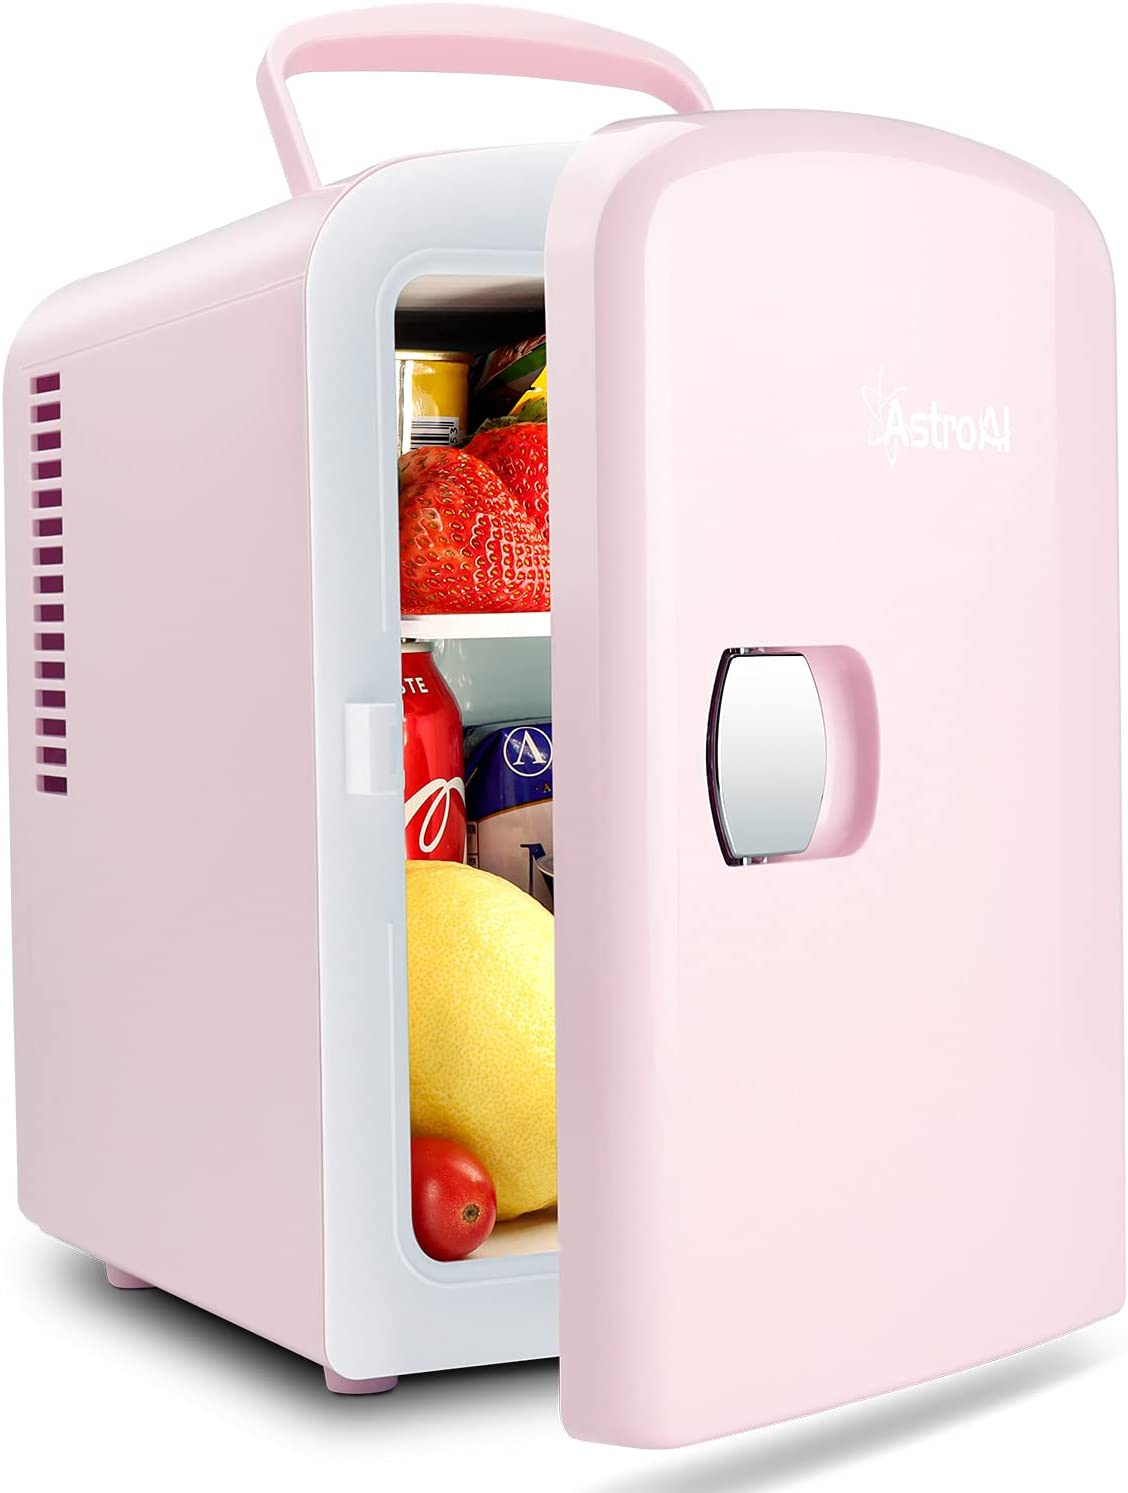 AstroAI Mini Fridge, 4 Liter/6 Can AC/DC Portable Thermoelectric Cooler and Warmer Refrigerators for Skincare, Beverage,Foods, Medications, Home and Travel, ETL Listed (Pink)